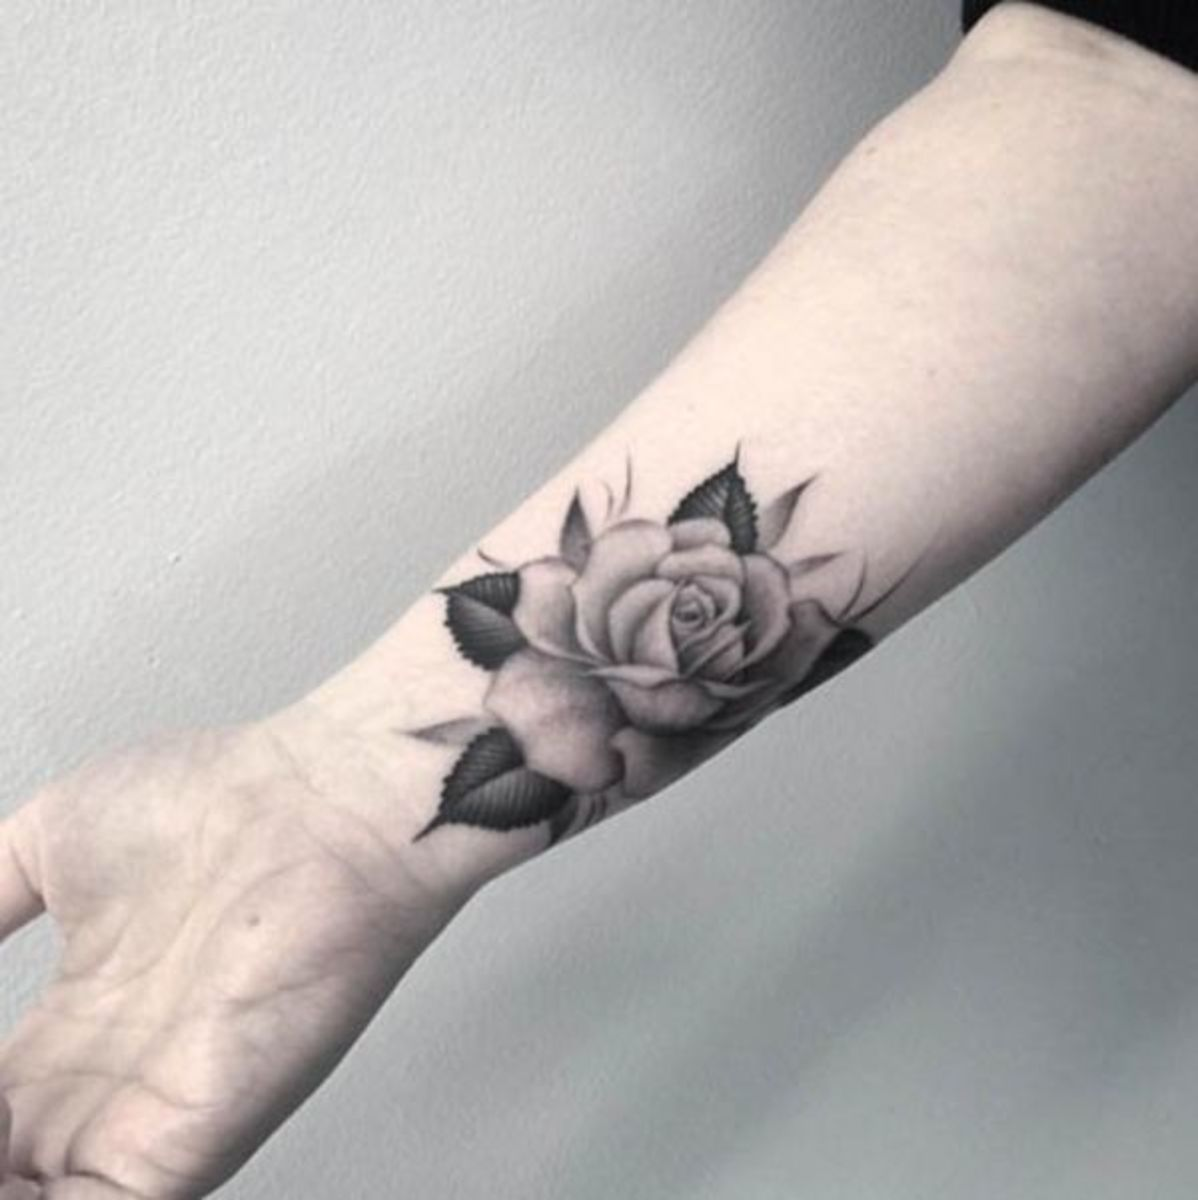 Compared to many other parts of the body, the wrist is not a bad spot for a first tattoo. The skin is thinner on the wrist which makes it hurt a little bit more than some places, but because the wrist is smaller it will be a relatively quick process. It tends to hurt more the closer you get to your hand, so if you are still nervous try asking your artist if your design can be moved up slightly. Pain Rating: 5 out of 10.